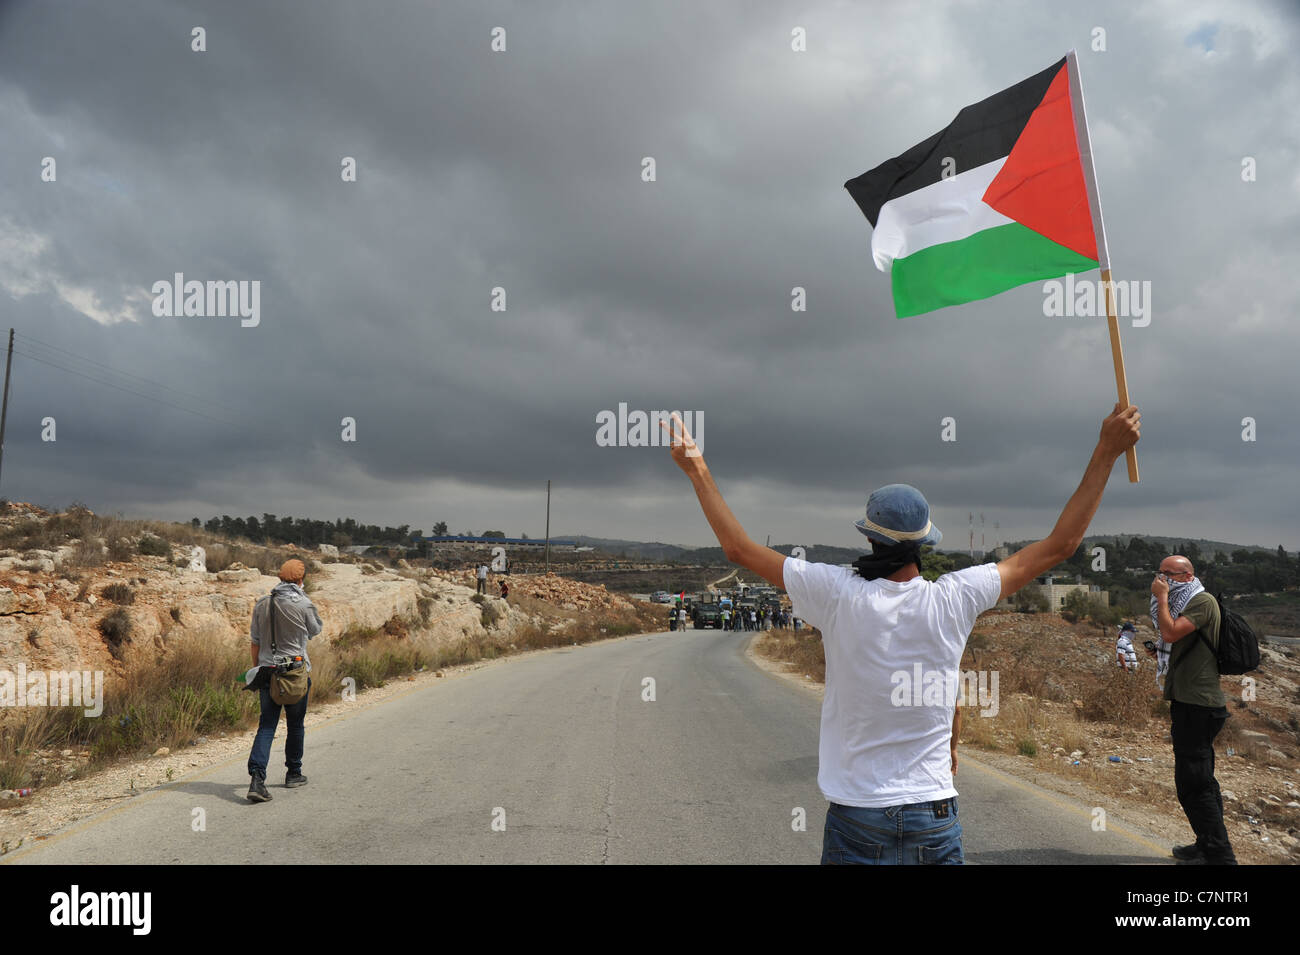 The village of NABI SALIH, September 23rd 2011, day of the request at the UN for the recognition of the Palestinian - Stock Image